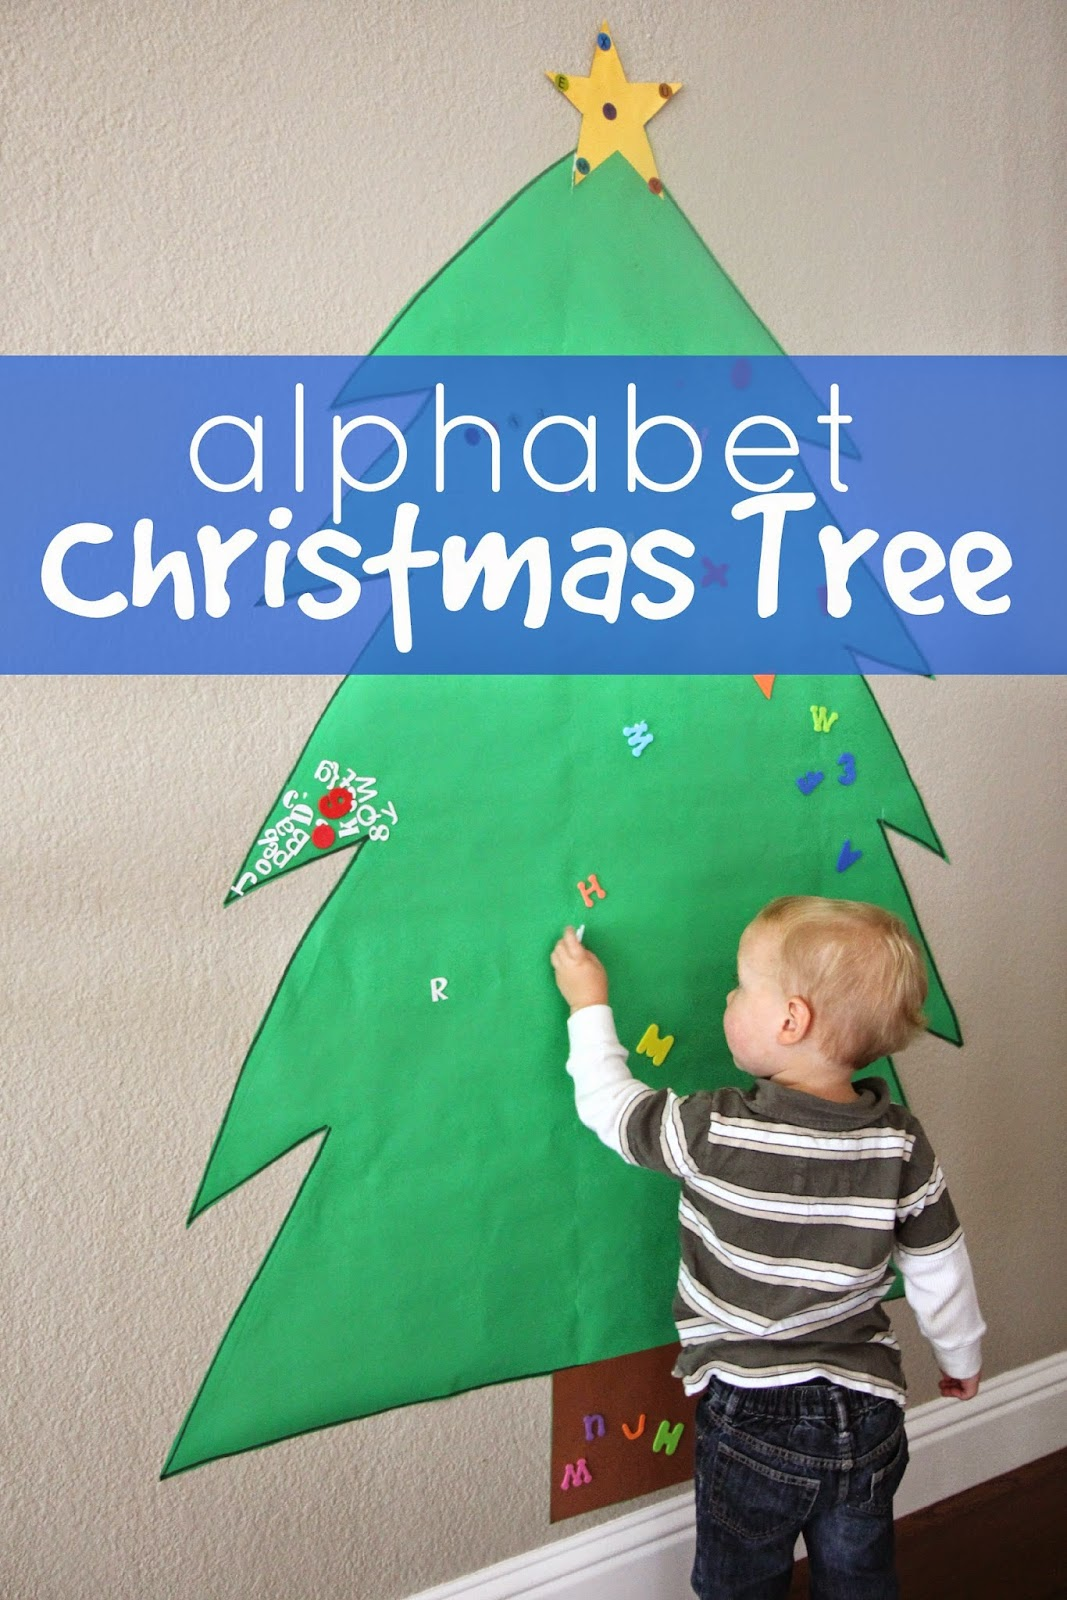 Toddler Approved!: Giant Alphabet Tree for Toddlers and ...